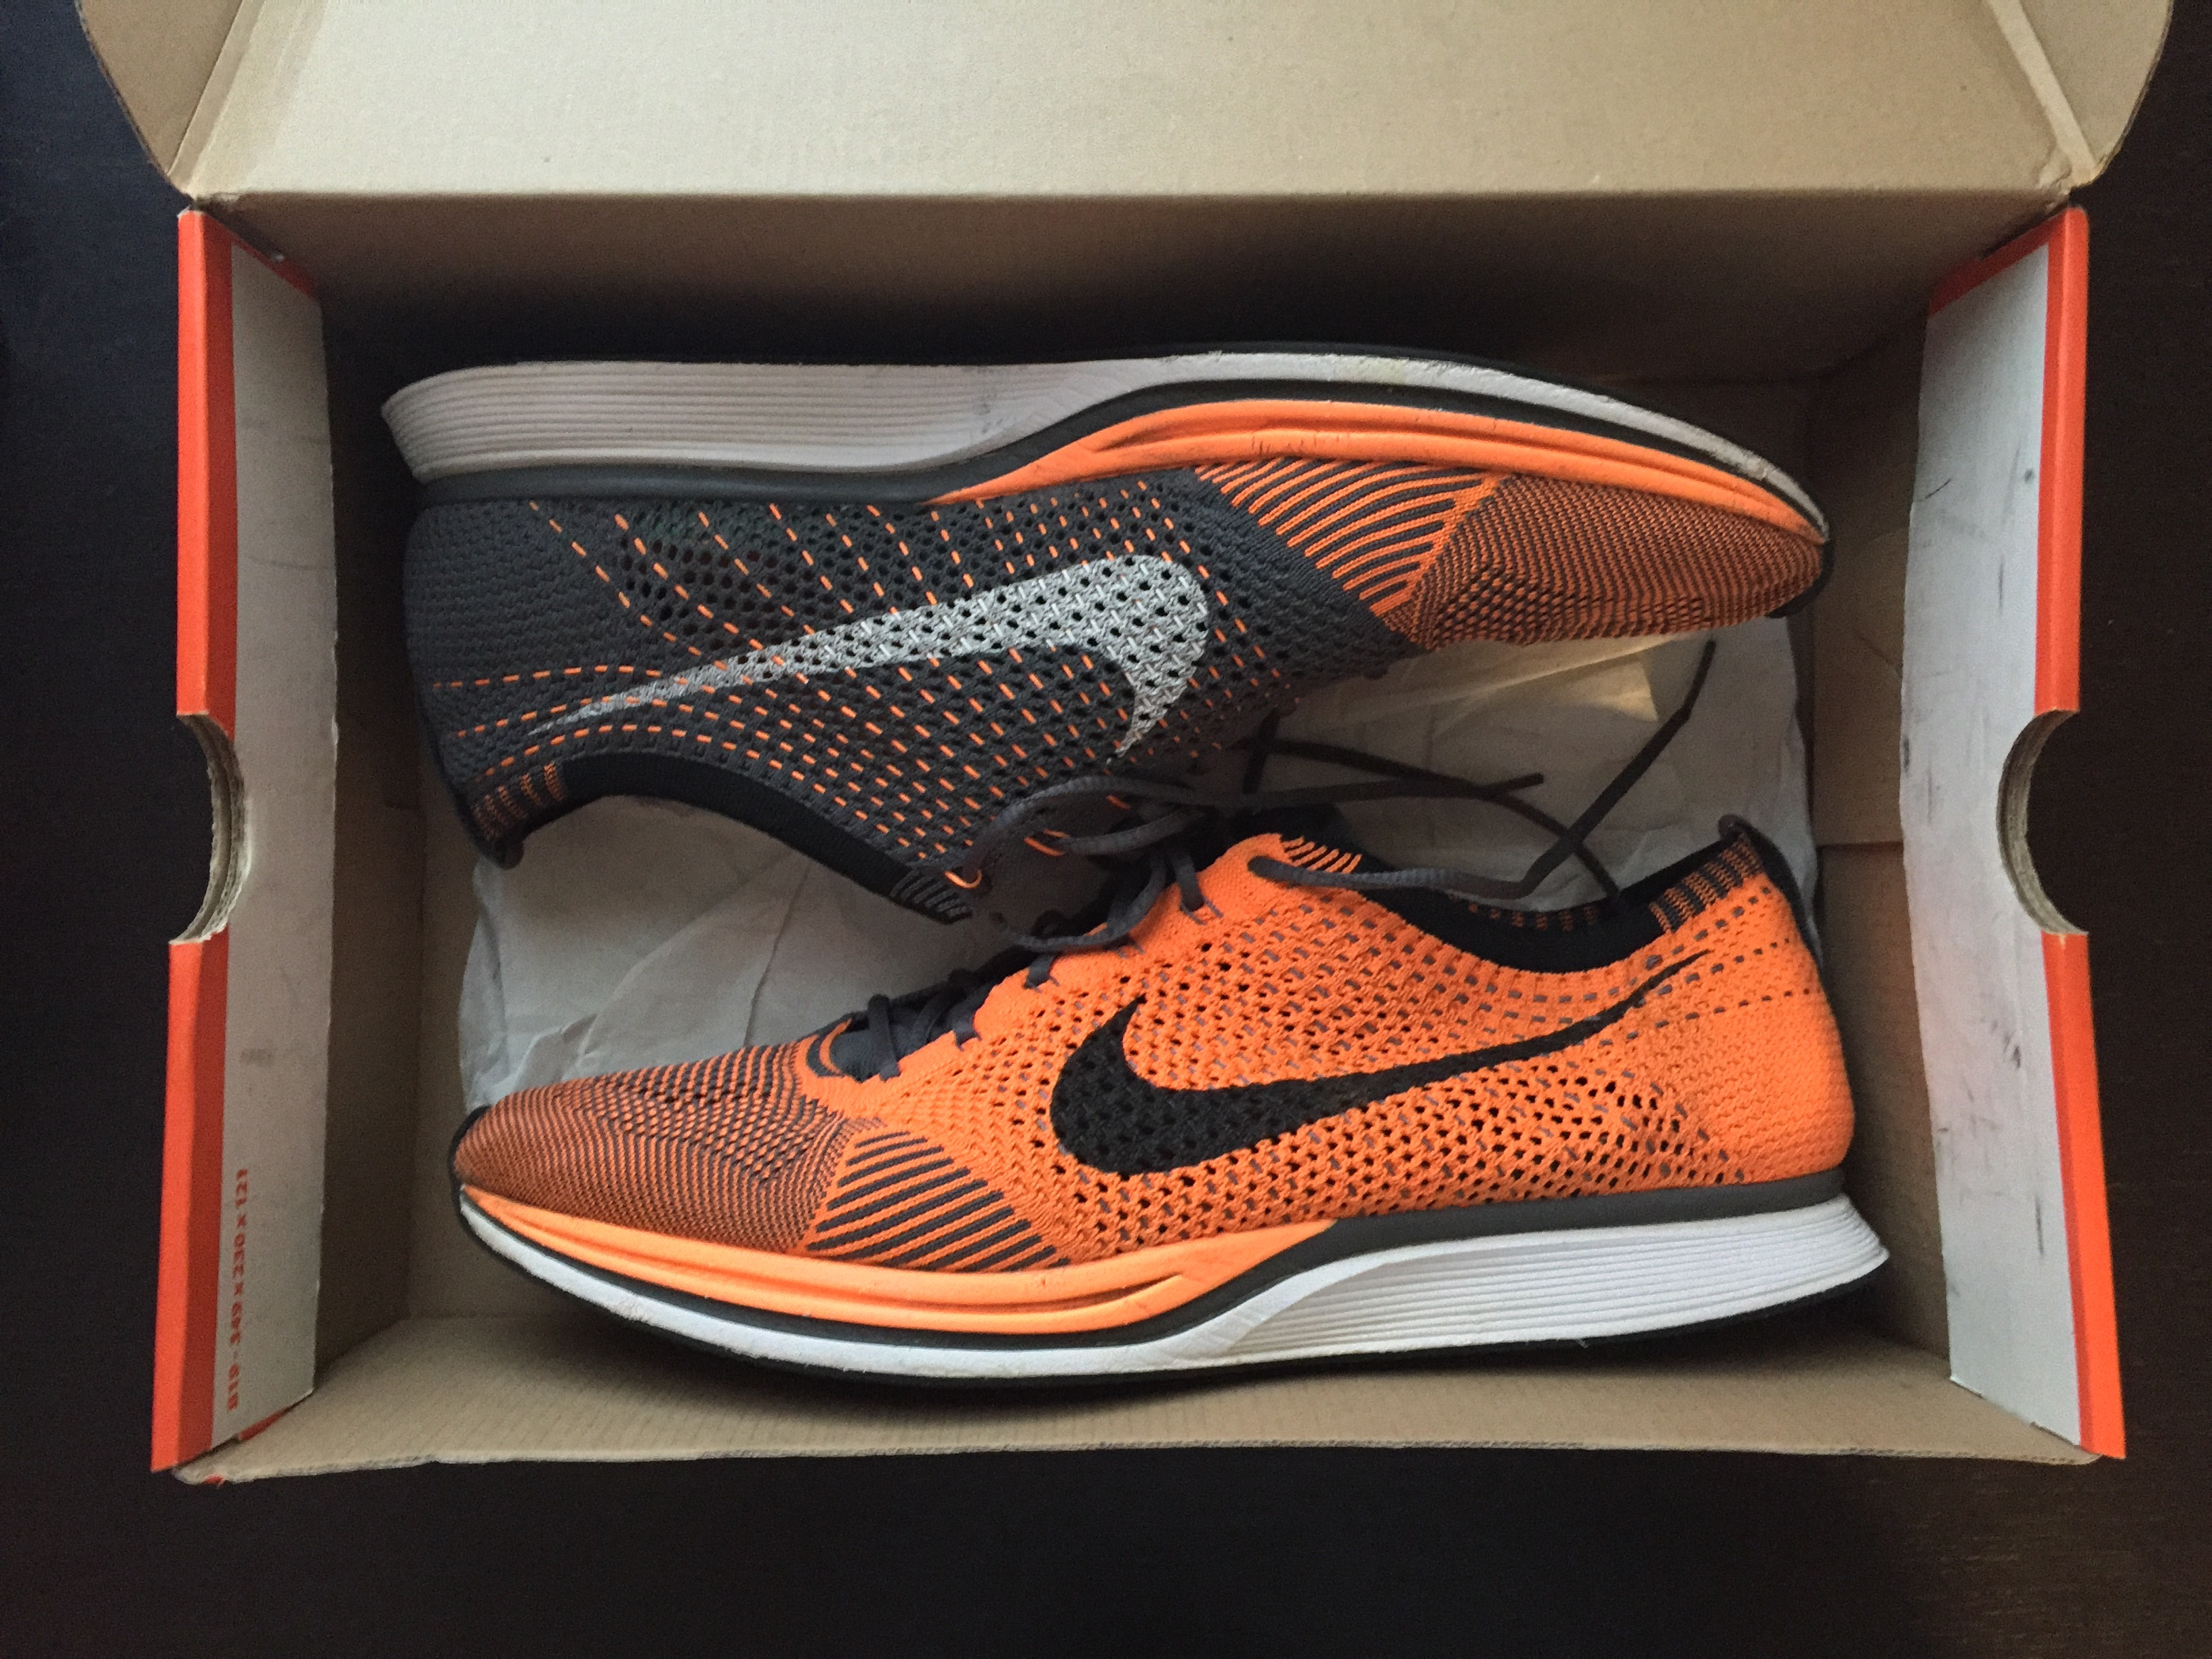 24dea78c5e644 Nike Flyknit Racer total orange 1.0 Size 13 - Low-Top Sneakers for ...